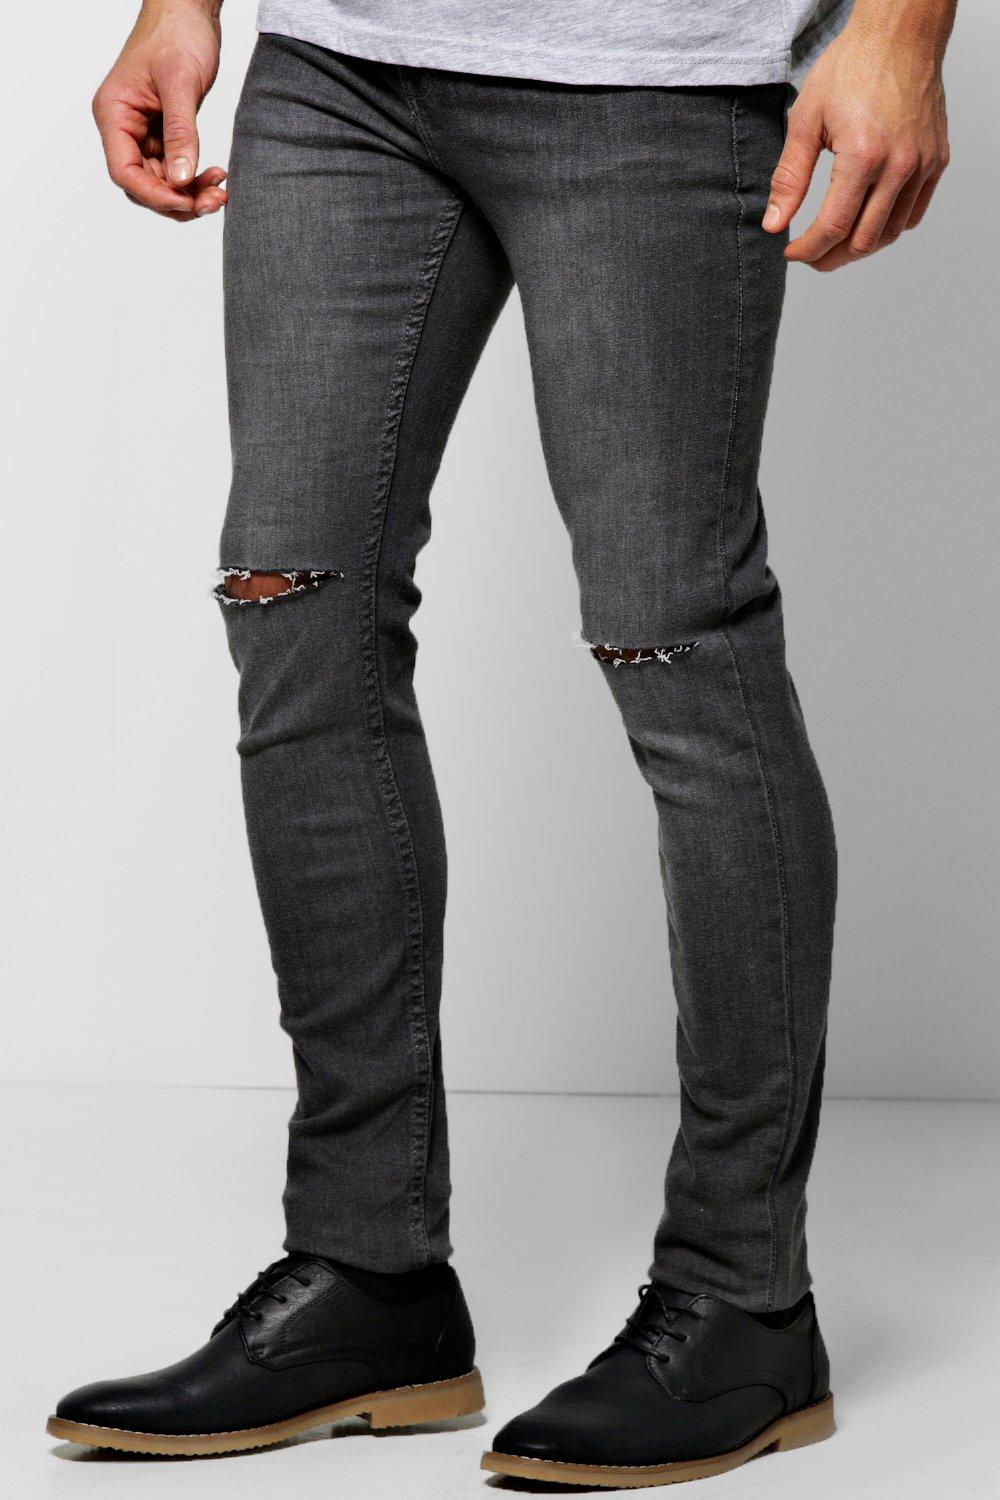 Sandblasted Ripped Knee Grey Super Skinny Jean